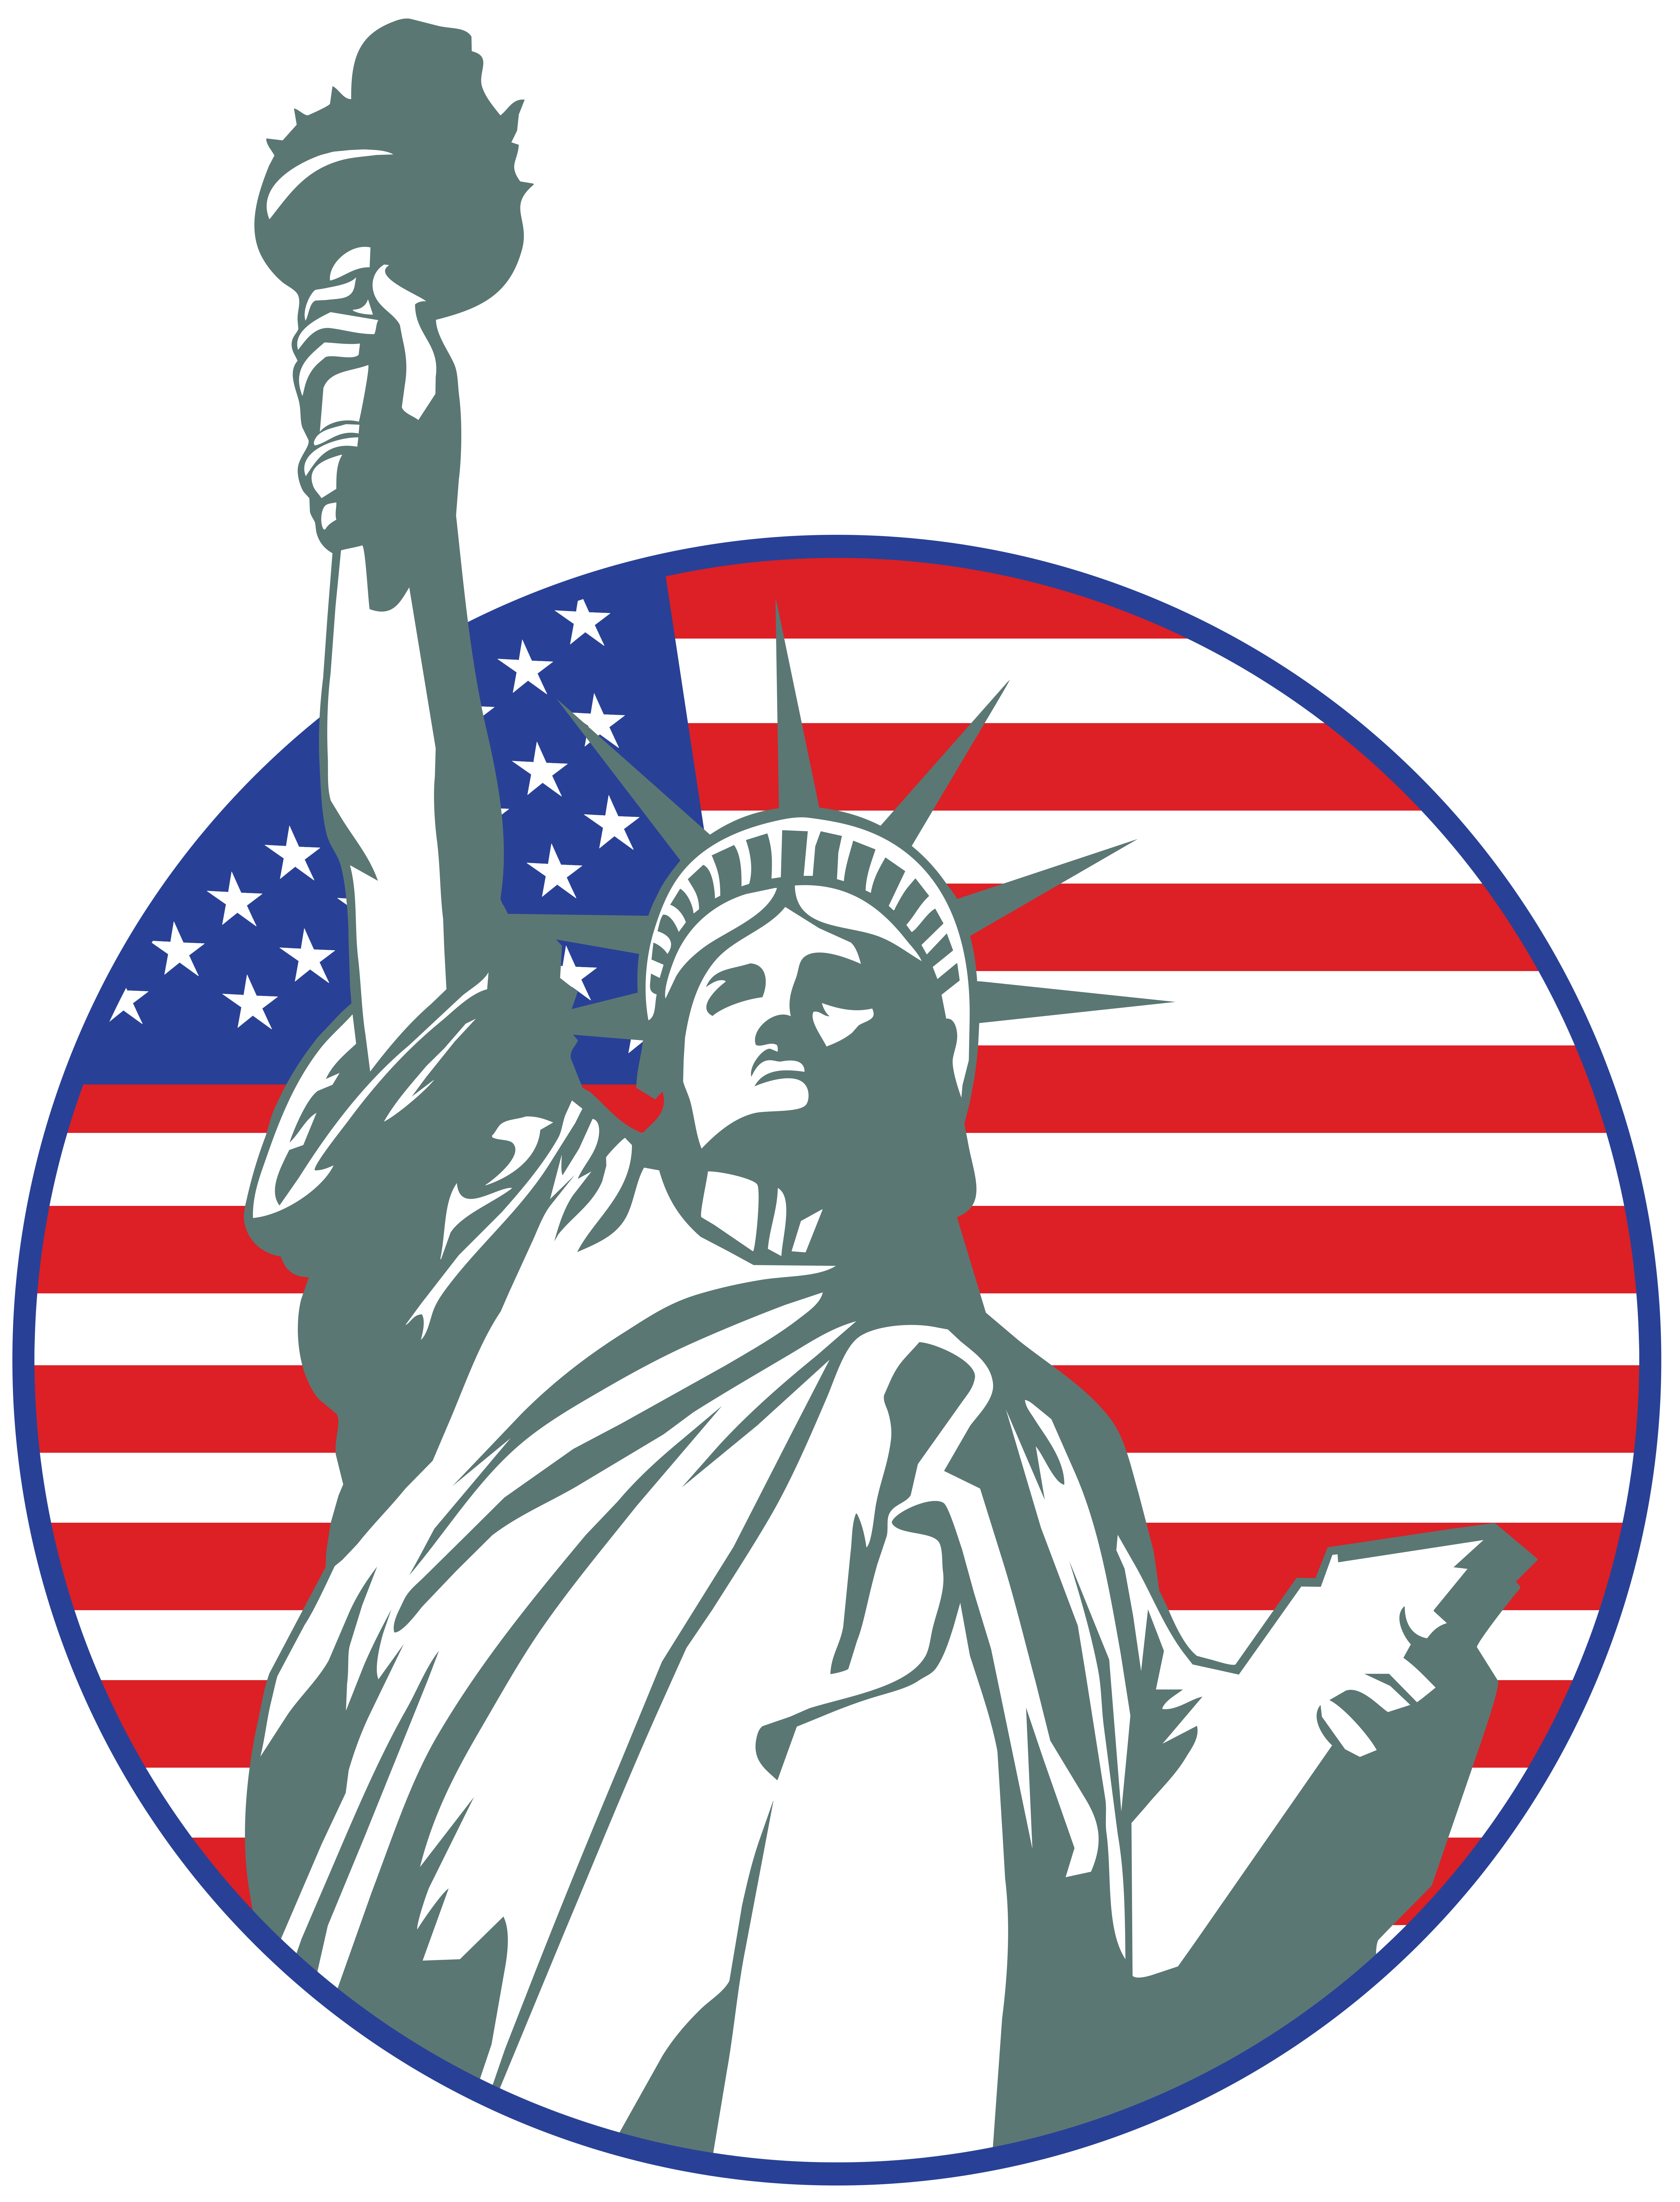 USA Statue of Liberty Stamp PNG Clip Art Image.